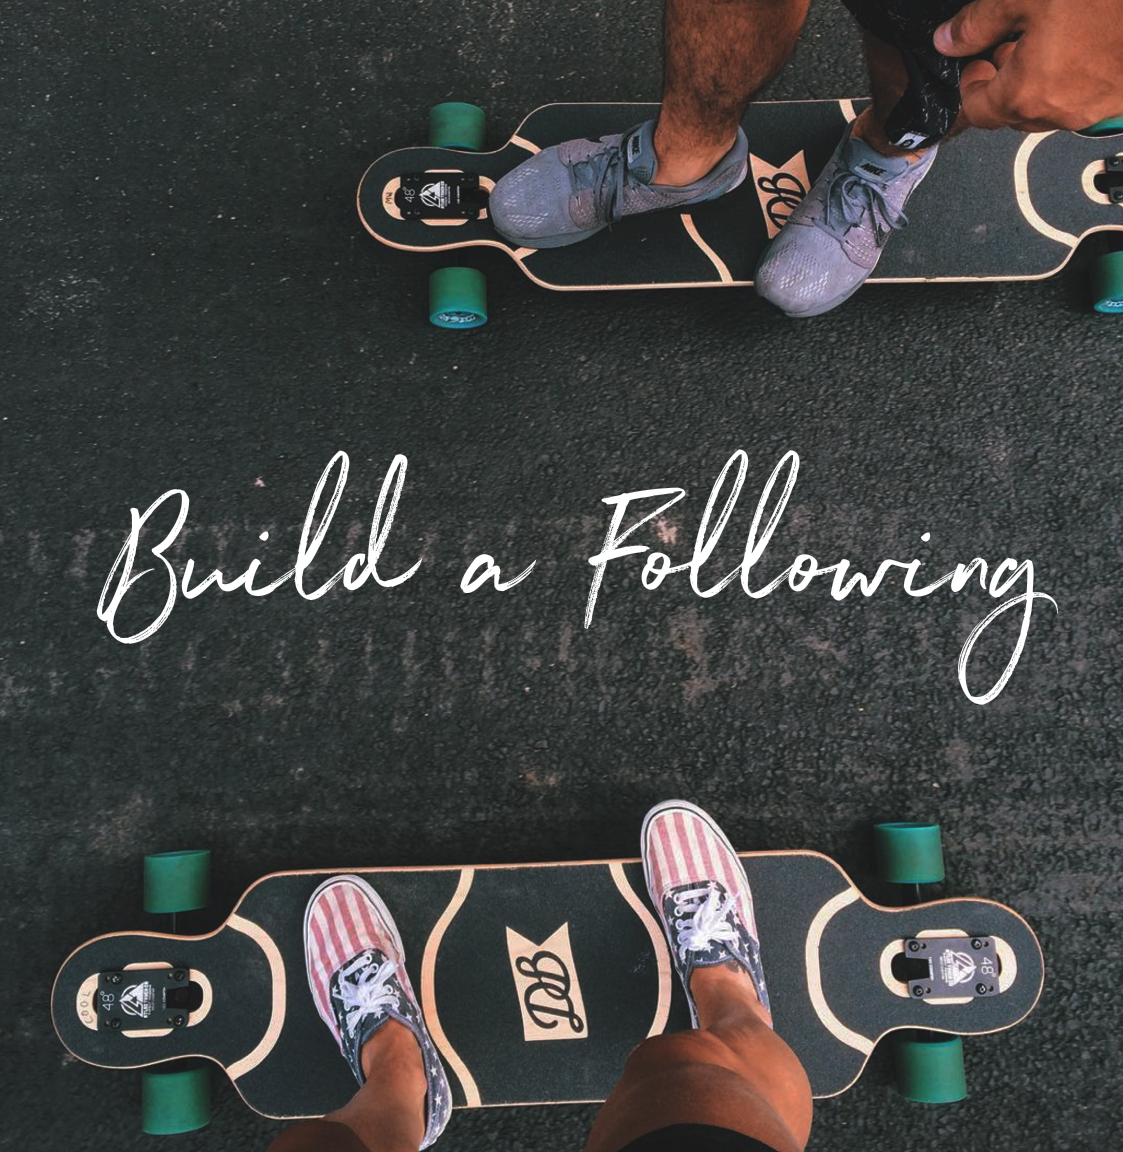 Up Your Instagram game Pt. 2: Building a Bigger, Better Following